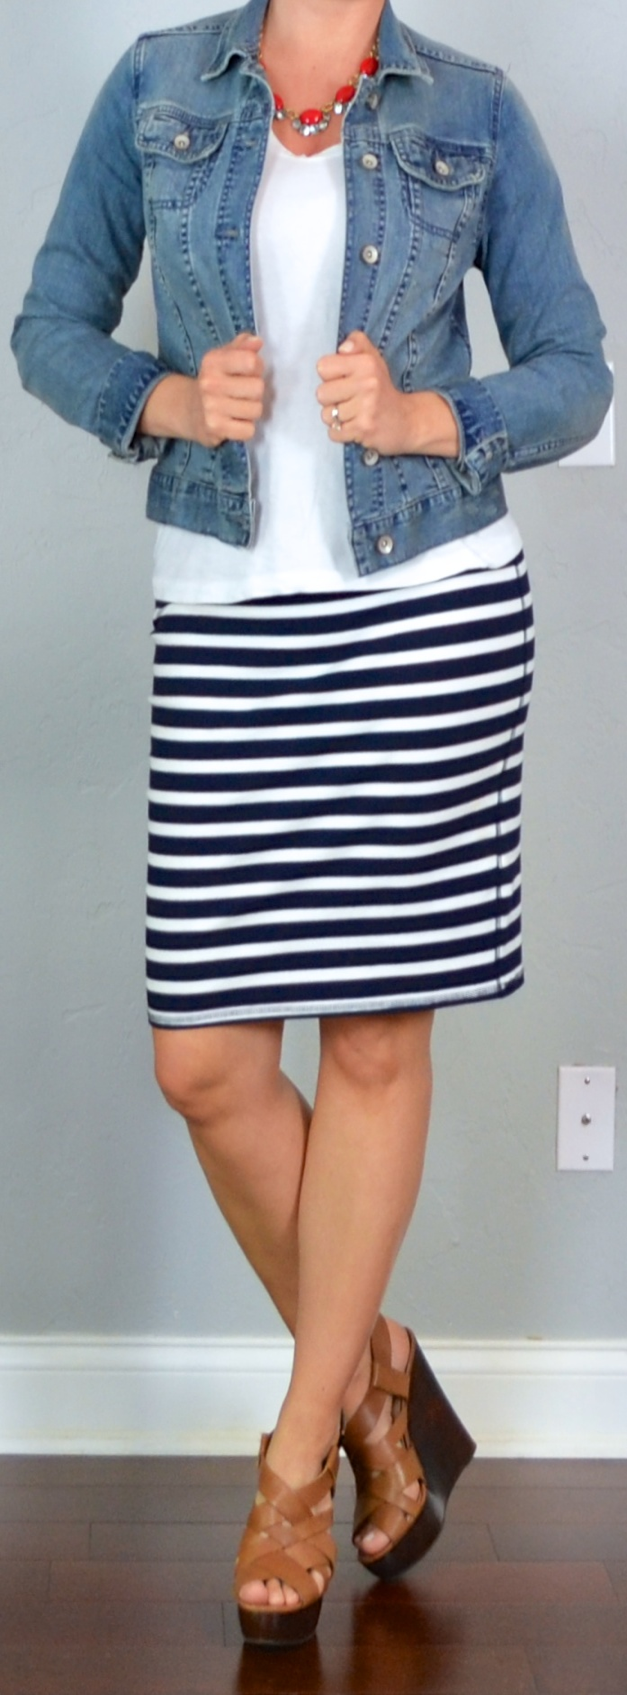 Outfit post jean jacket white t-shirt striped jersey ...